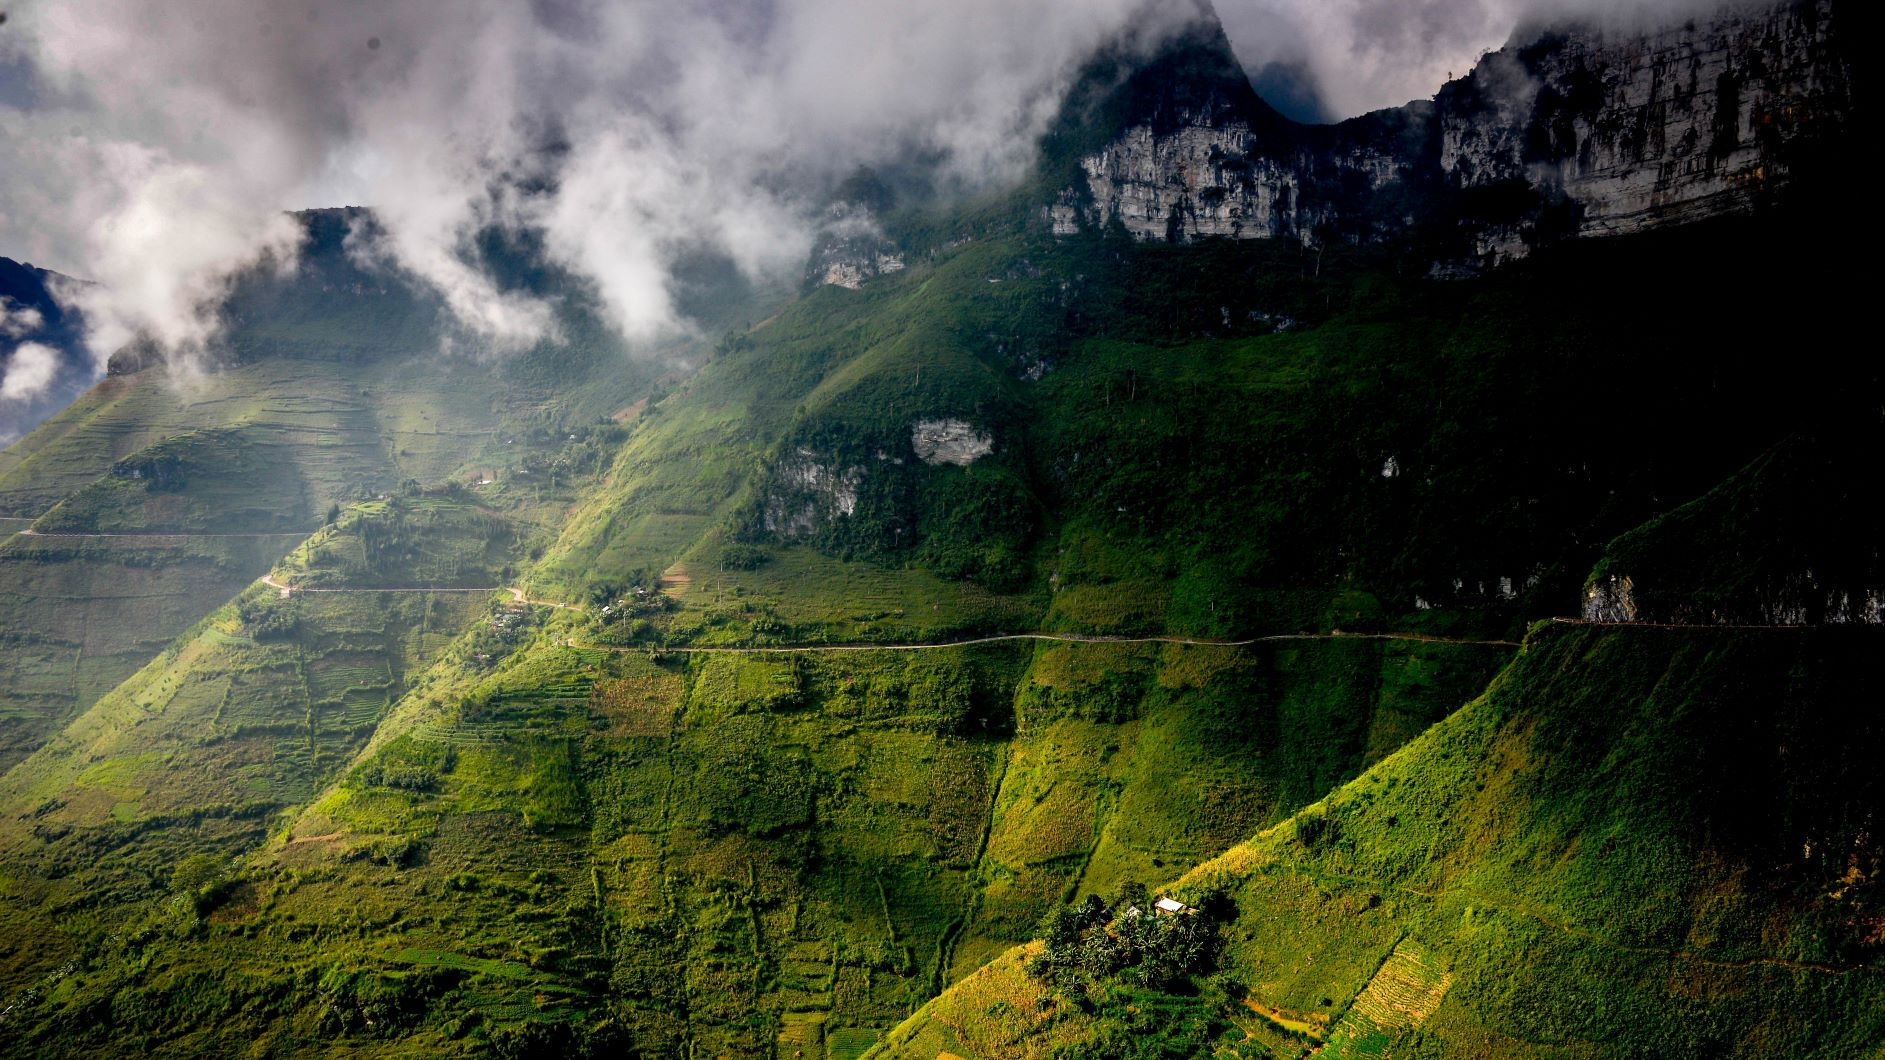 Ma Pi Leng - One of the Greatest Pass in Vietnam